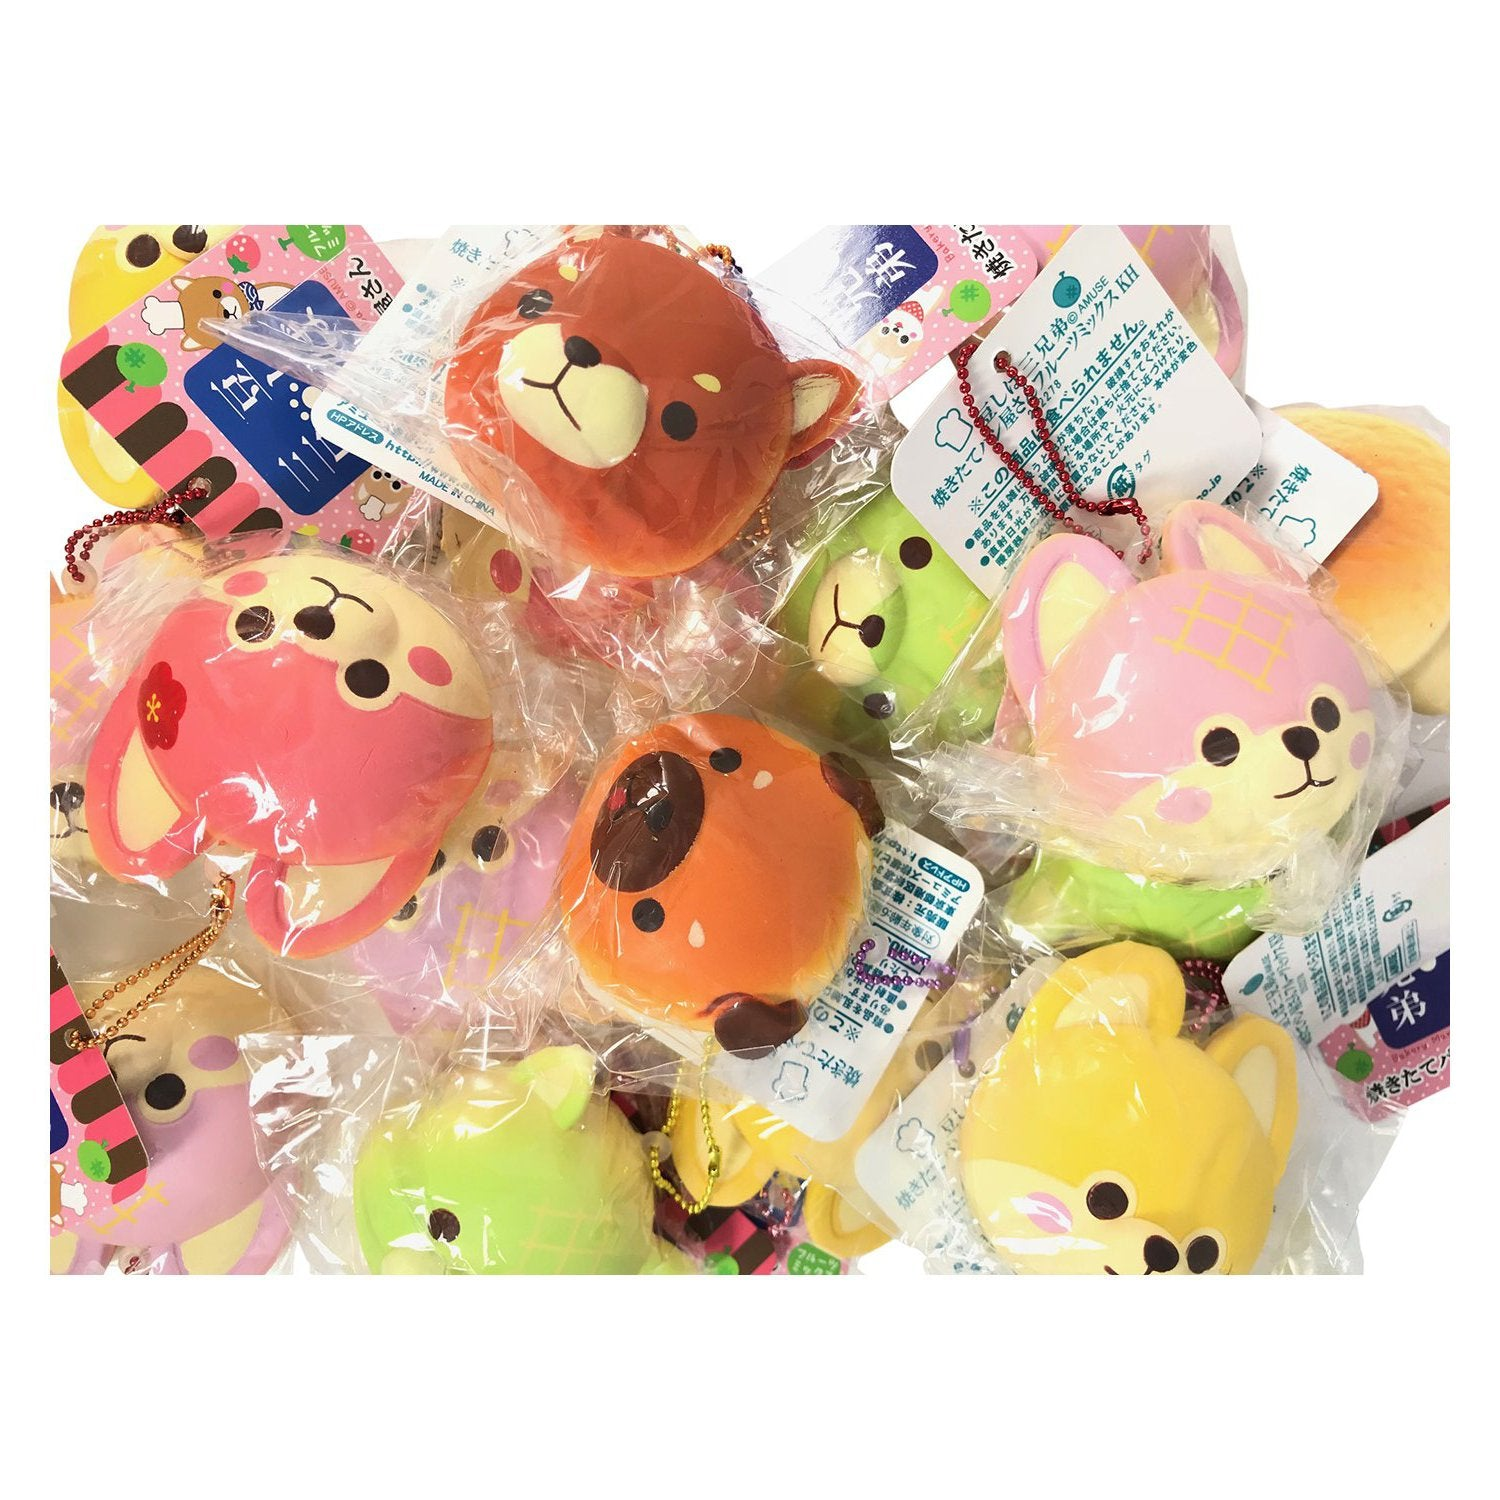 Squishy Pops Blind Bags : Mini ADORABLE Puppy Bread Bun Squishy from Japan! Bakery Mameshiba BLI Jenna Lyn Squishies and ...